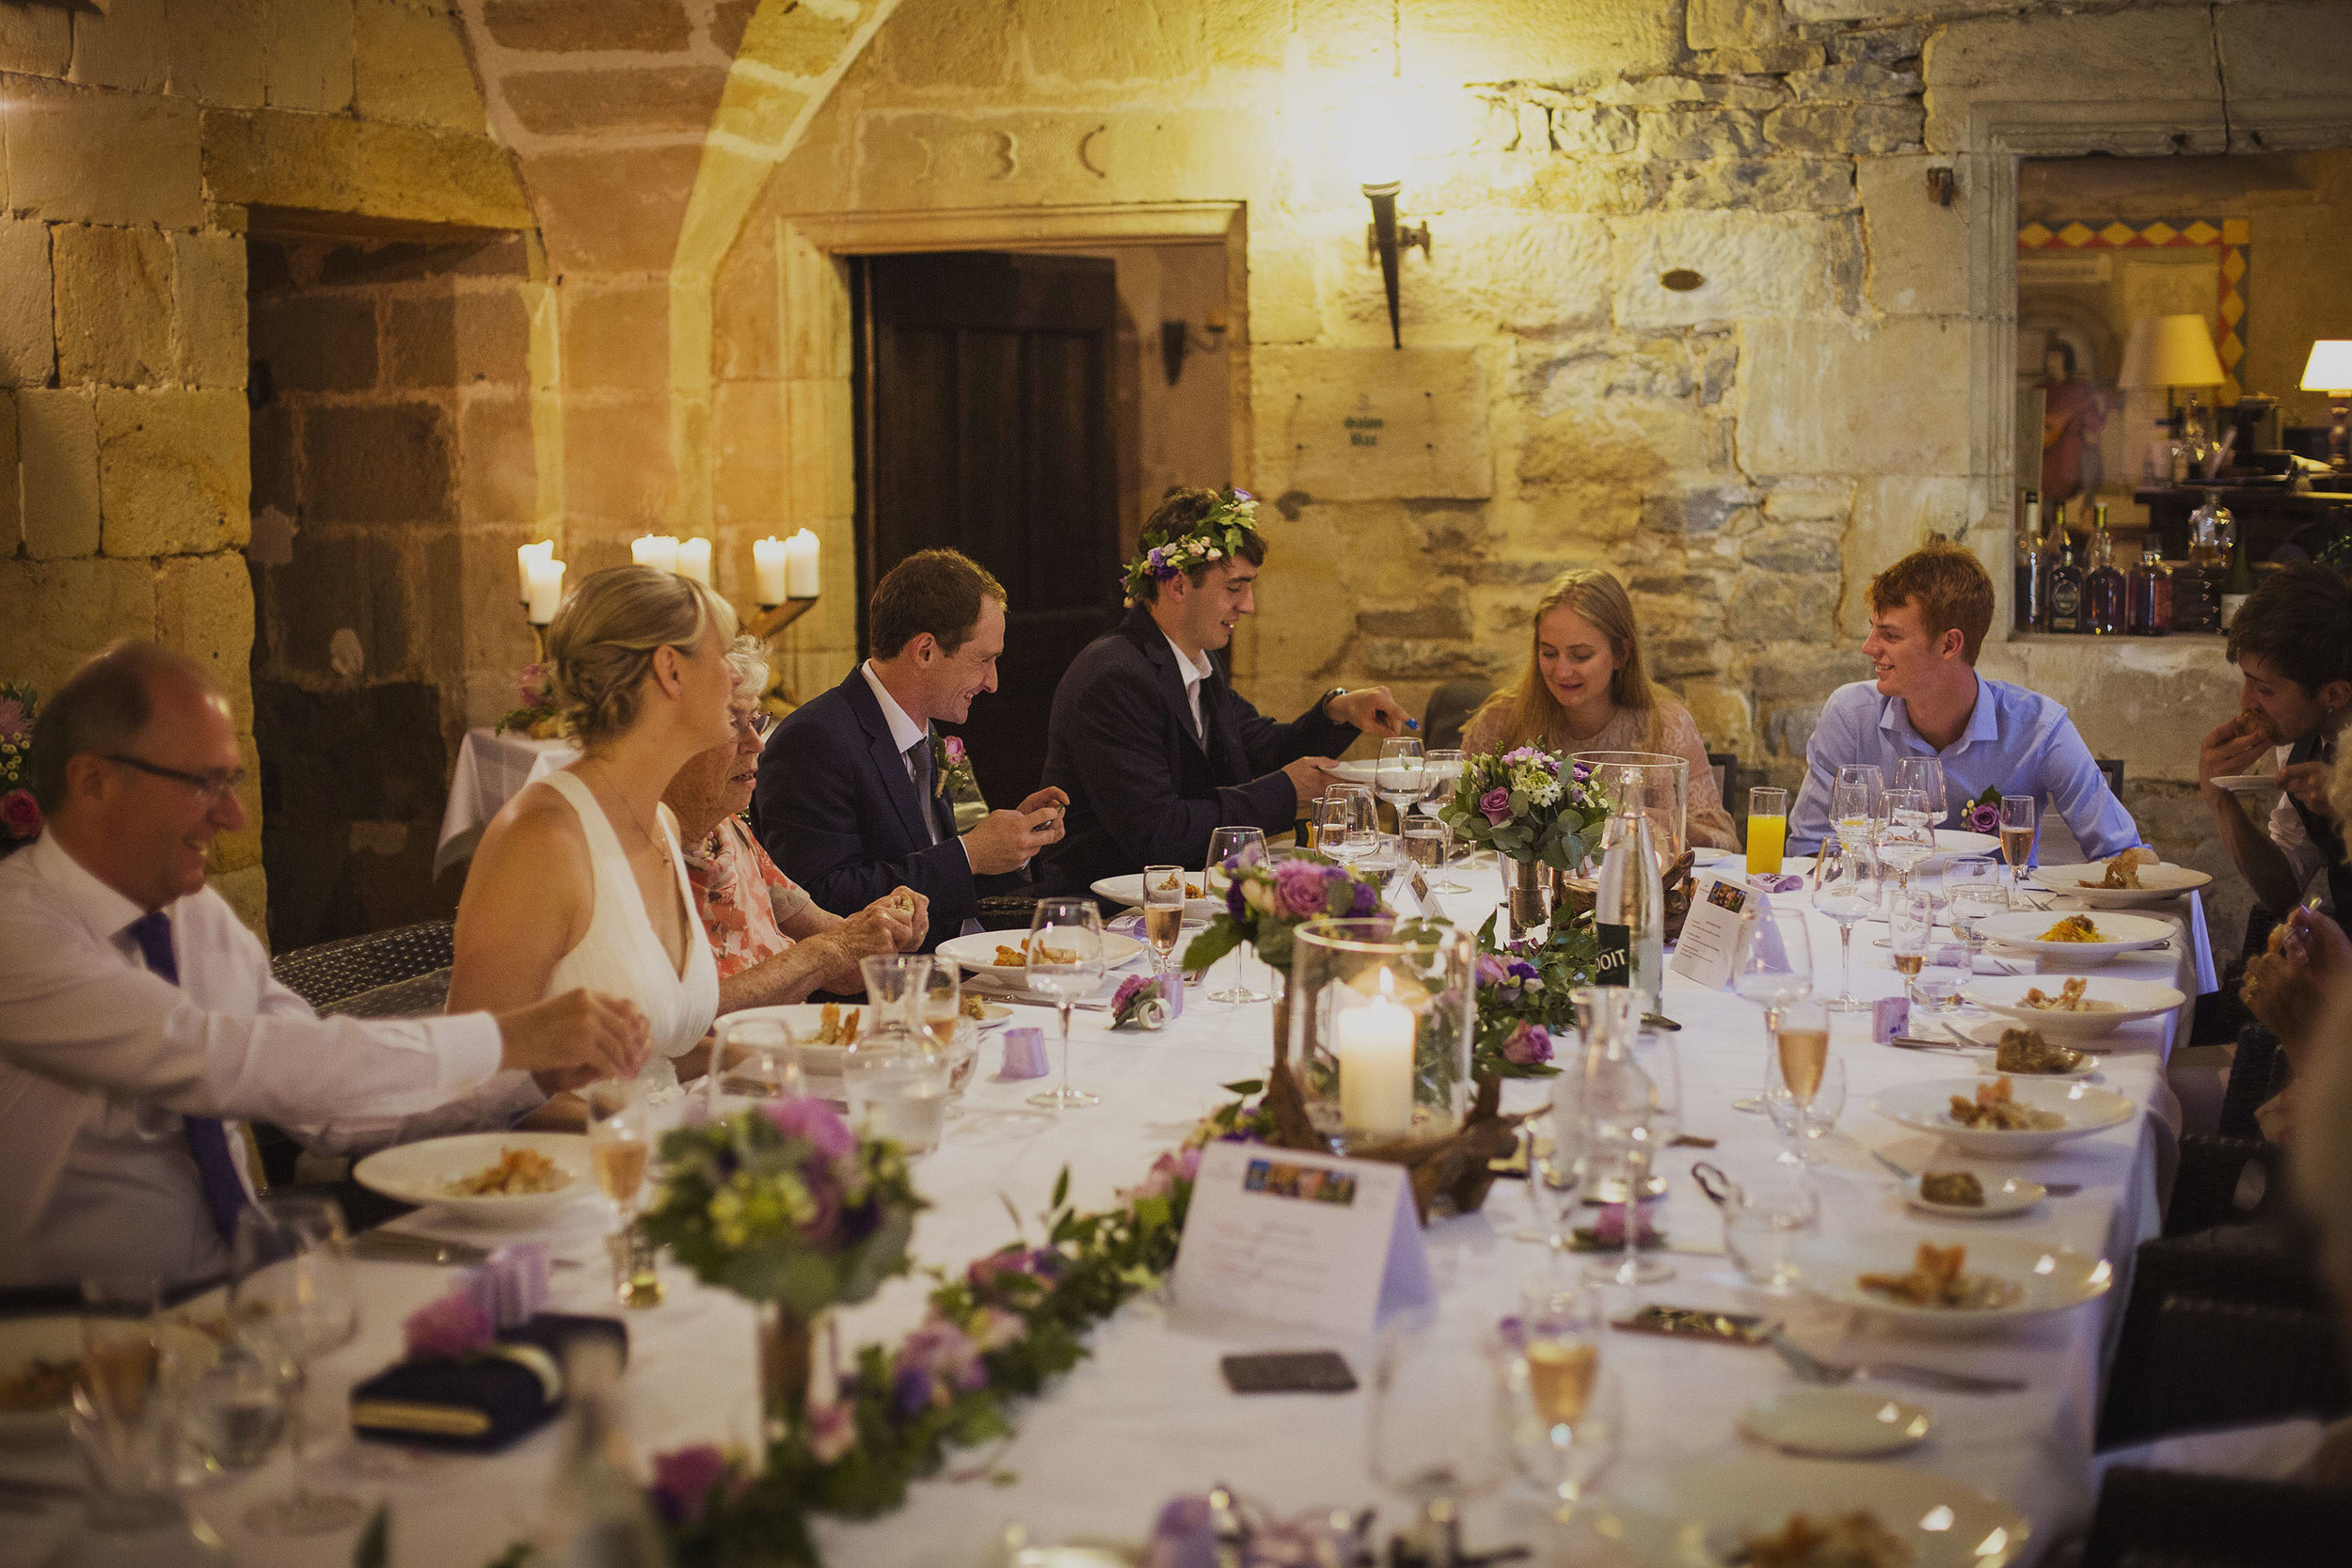 wedding breakfast at chateaux des ducs de joyeuses france destination wedding photography